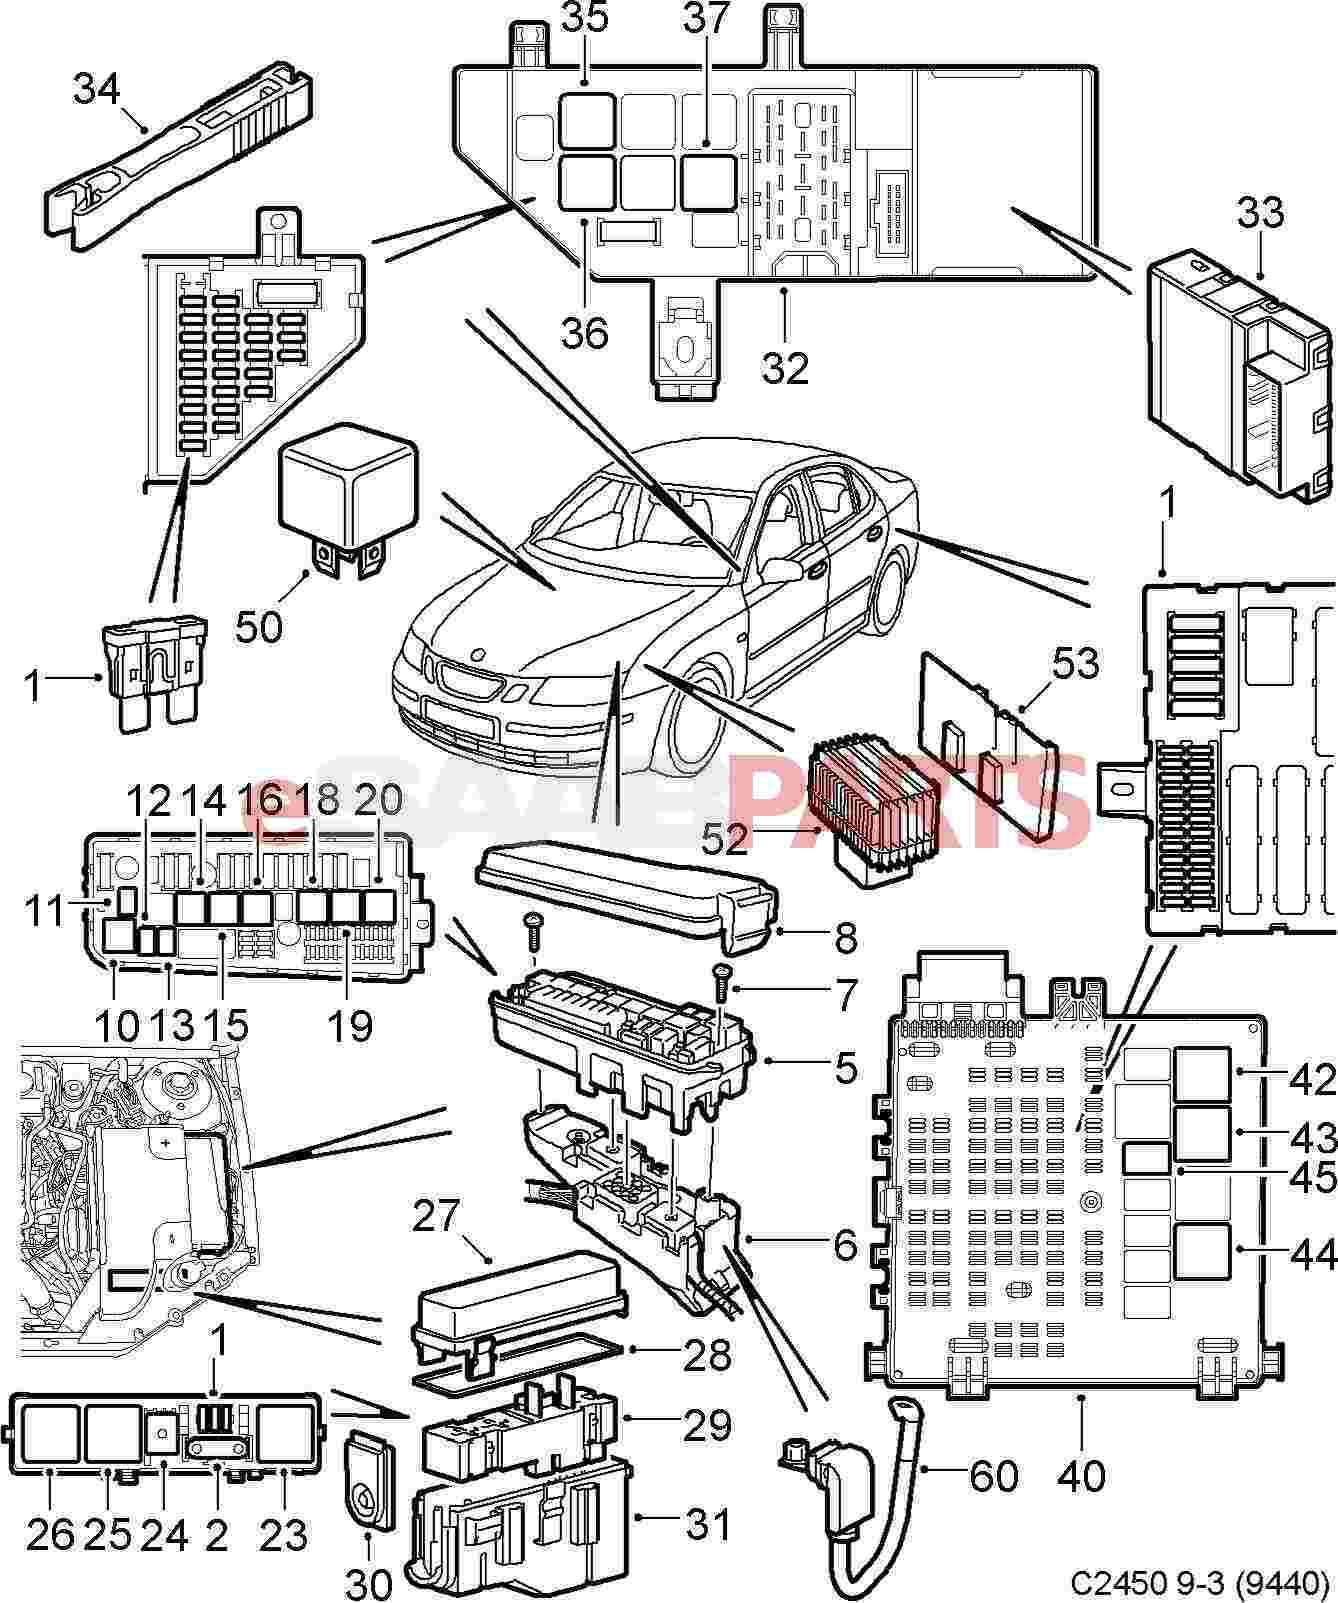 Cj7 Ignition Wiring Diagram As Well Audi 80 B4 Further Datsun 280z